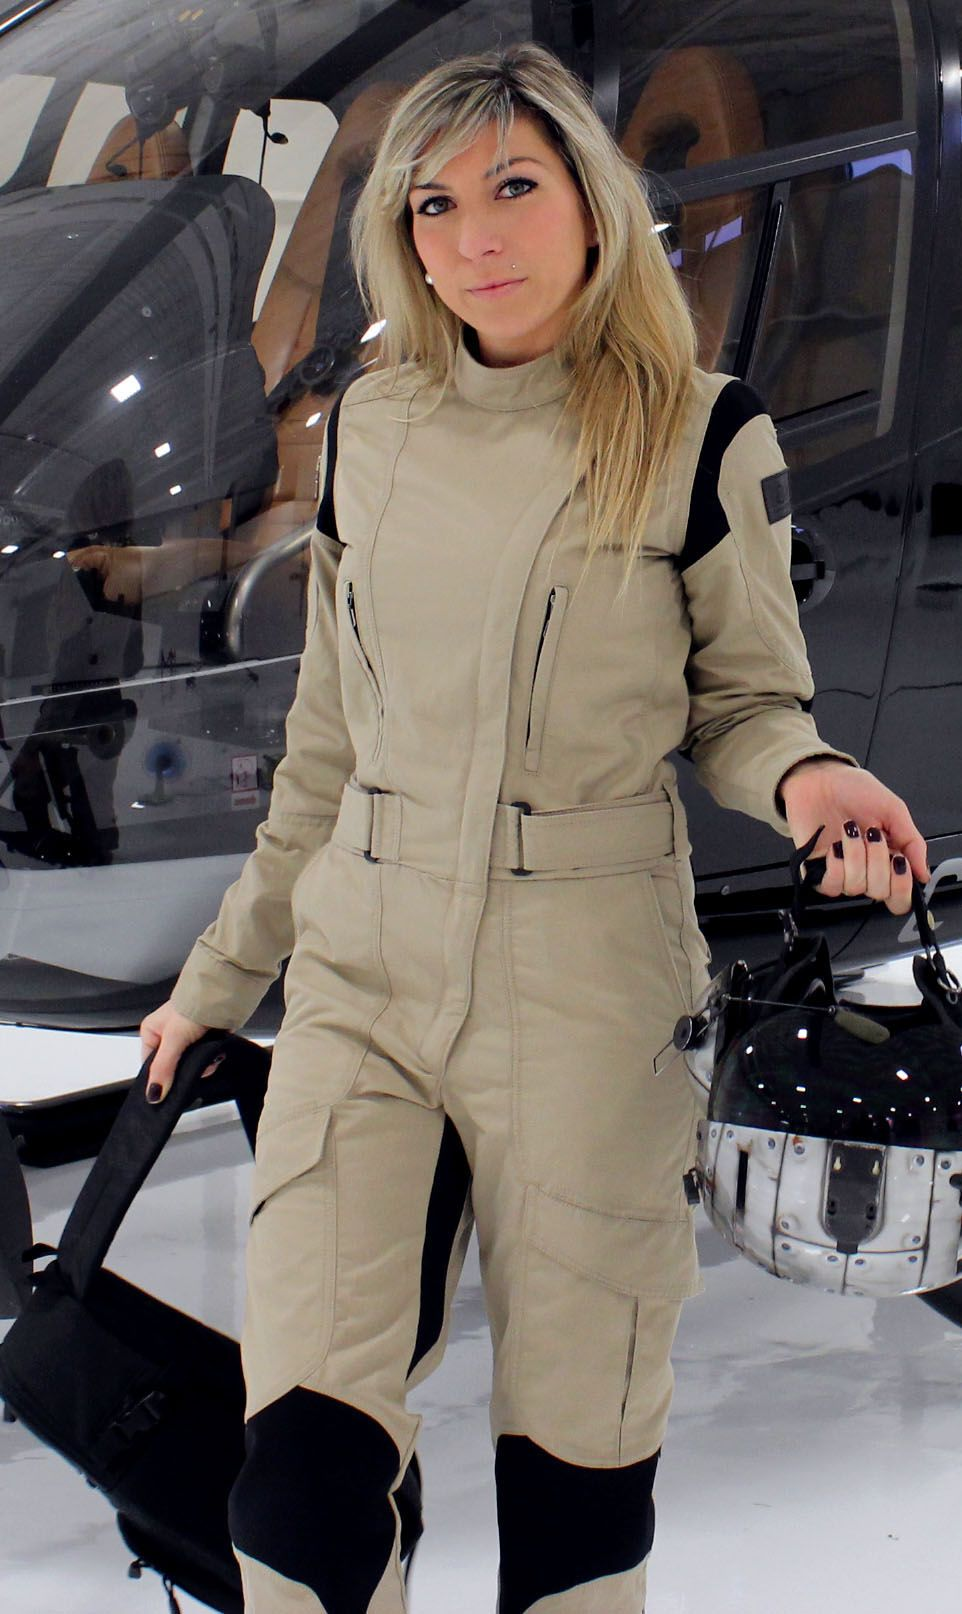 d33ed6b2f7 WOMEN - The Rotor flight suit was specifically adapted to the female  figure. Its design and ergonomic cut translate to style and greater comfort  for the ...